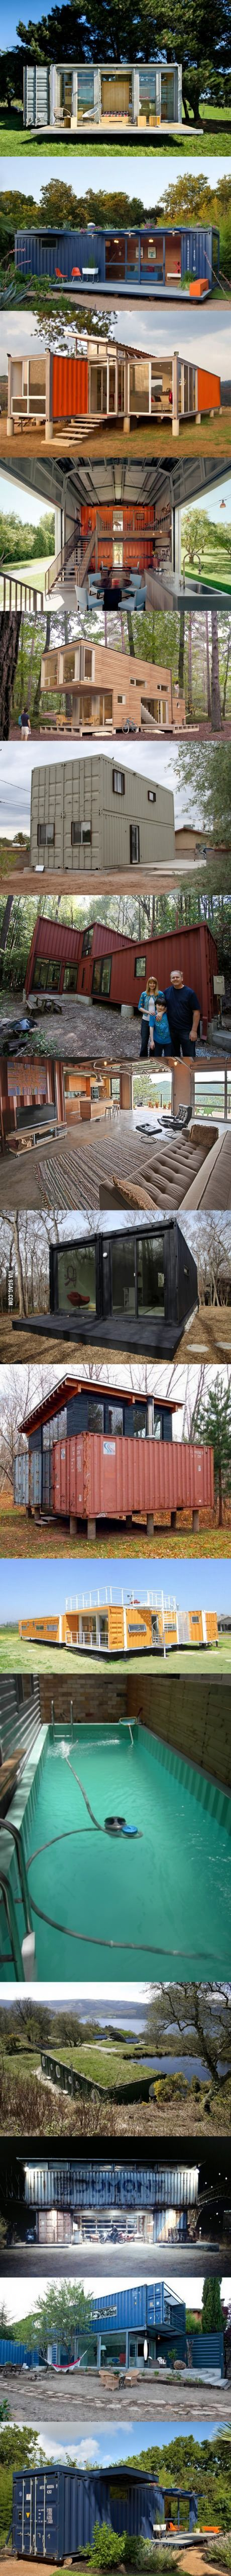 Maisons avec des conteneurs - A used shipping container costs about $2K, after that it's up to you.